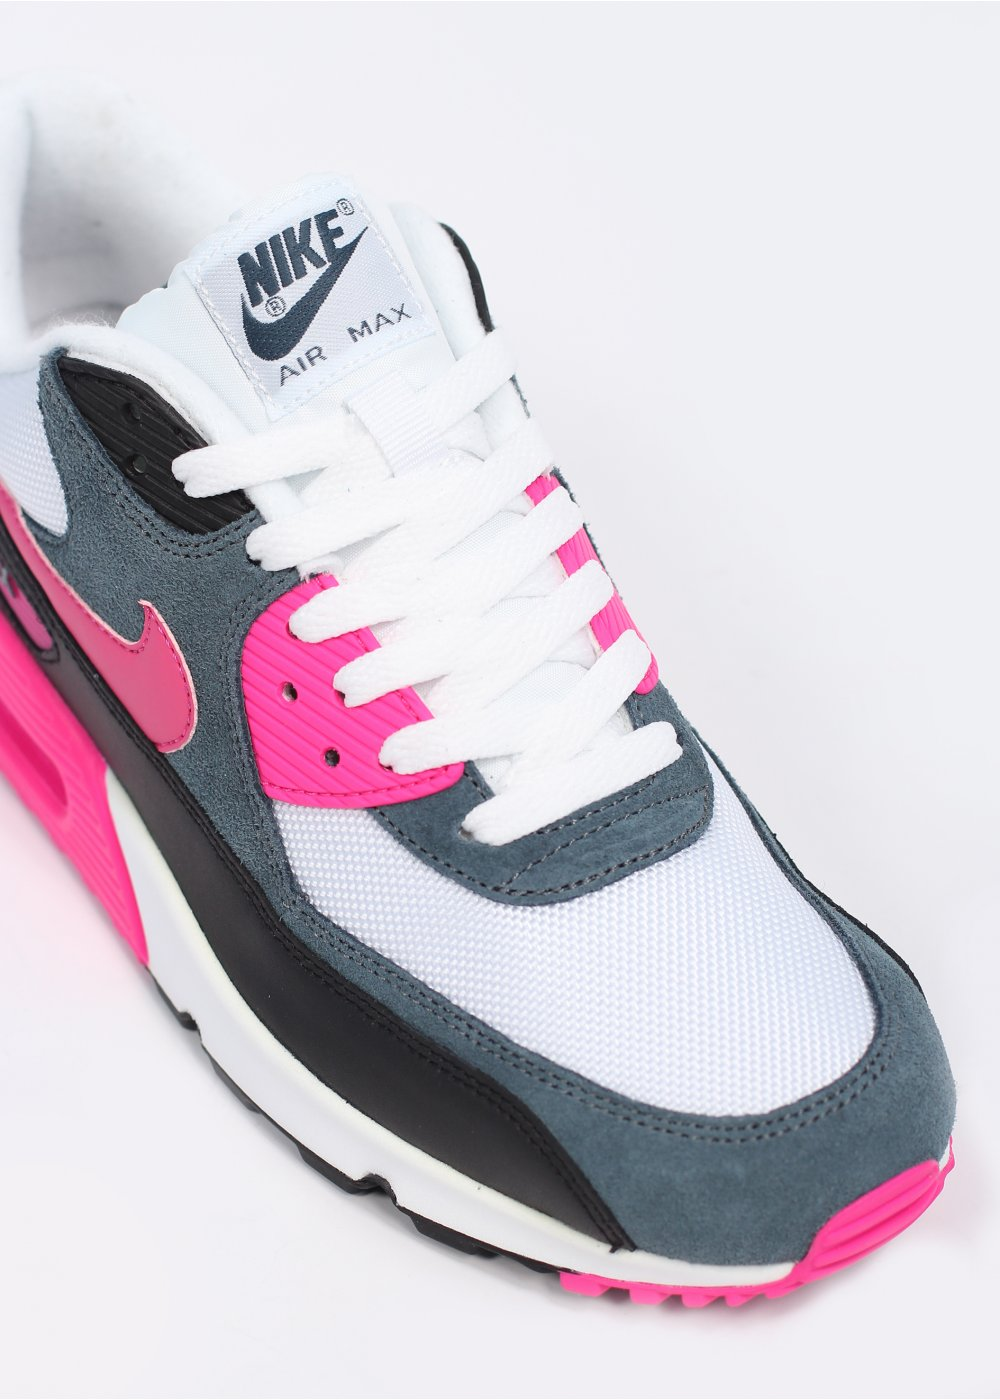 Air Max 90 White And Pink